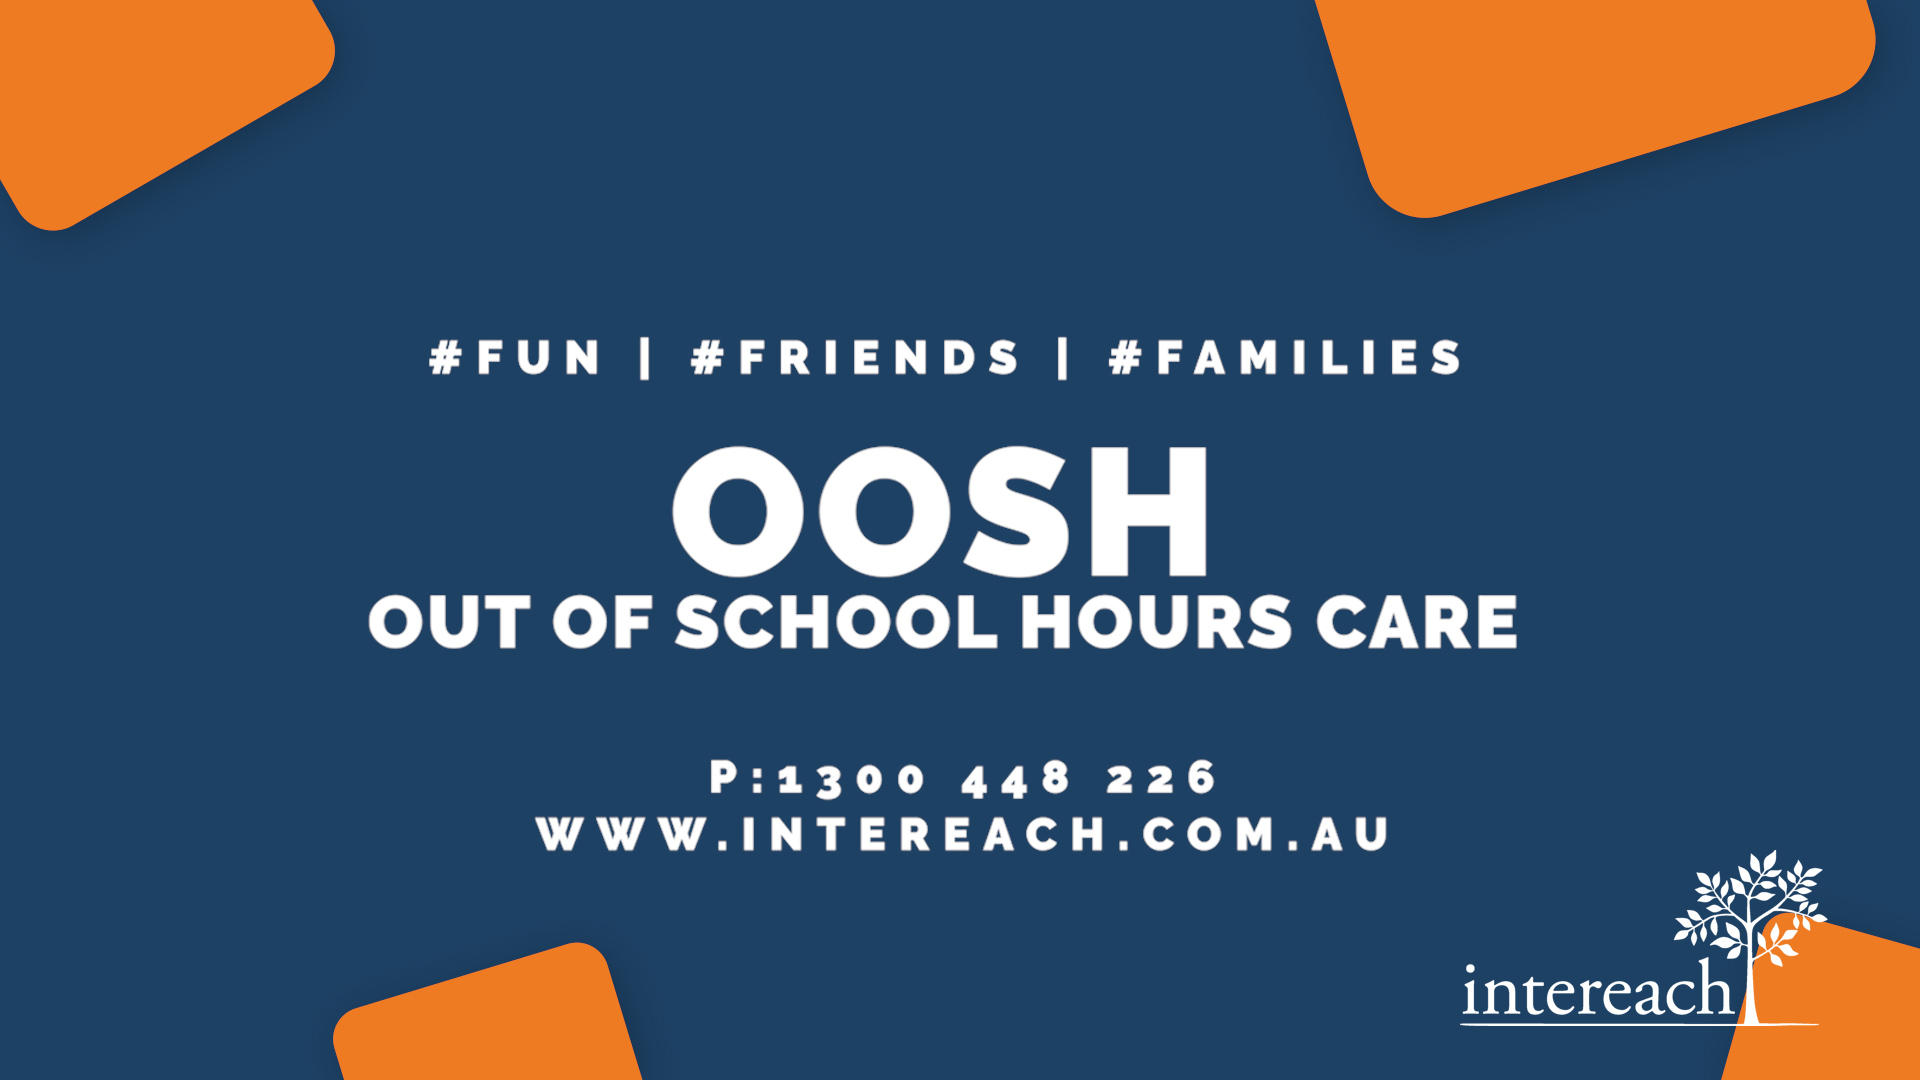 'Out of School Hours Care' contact information